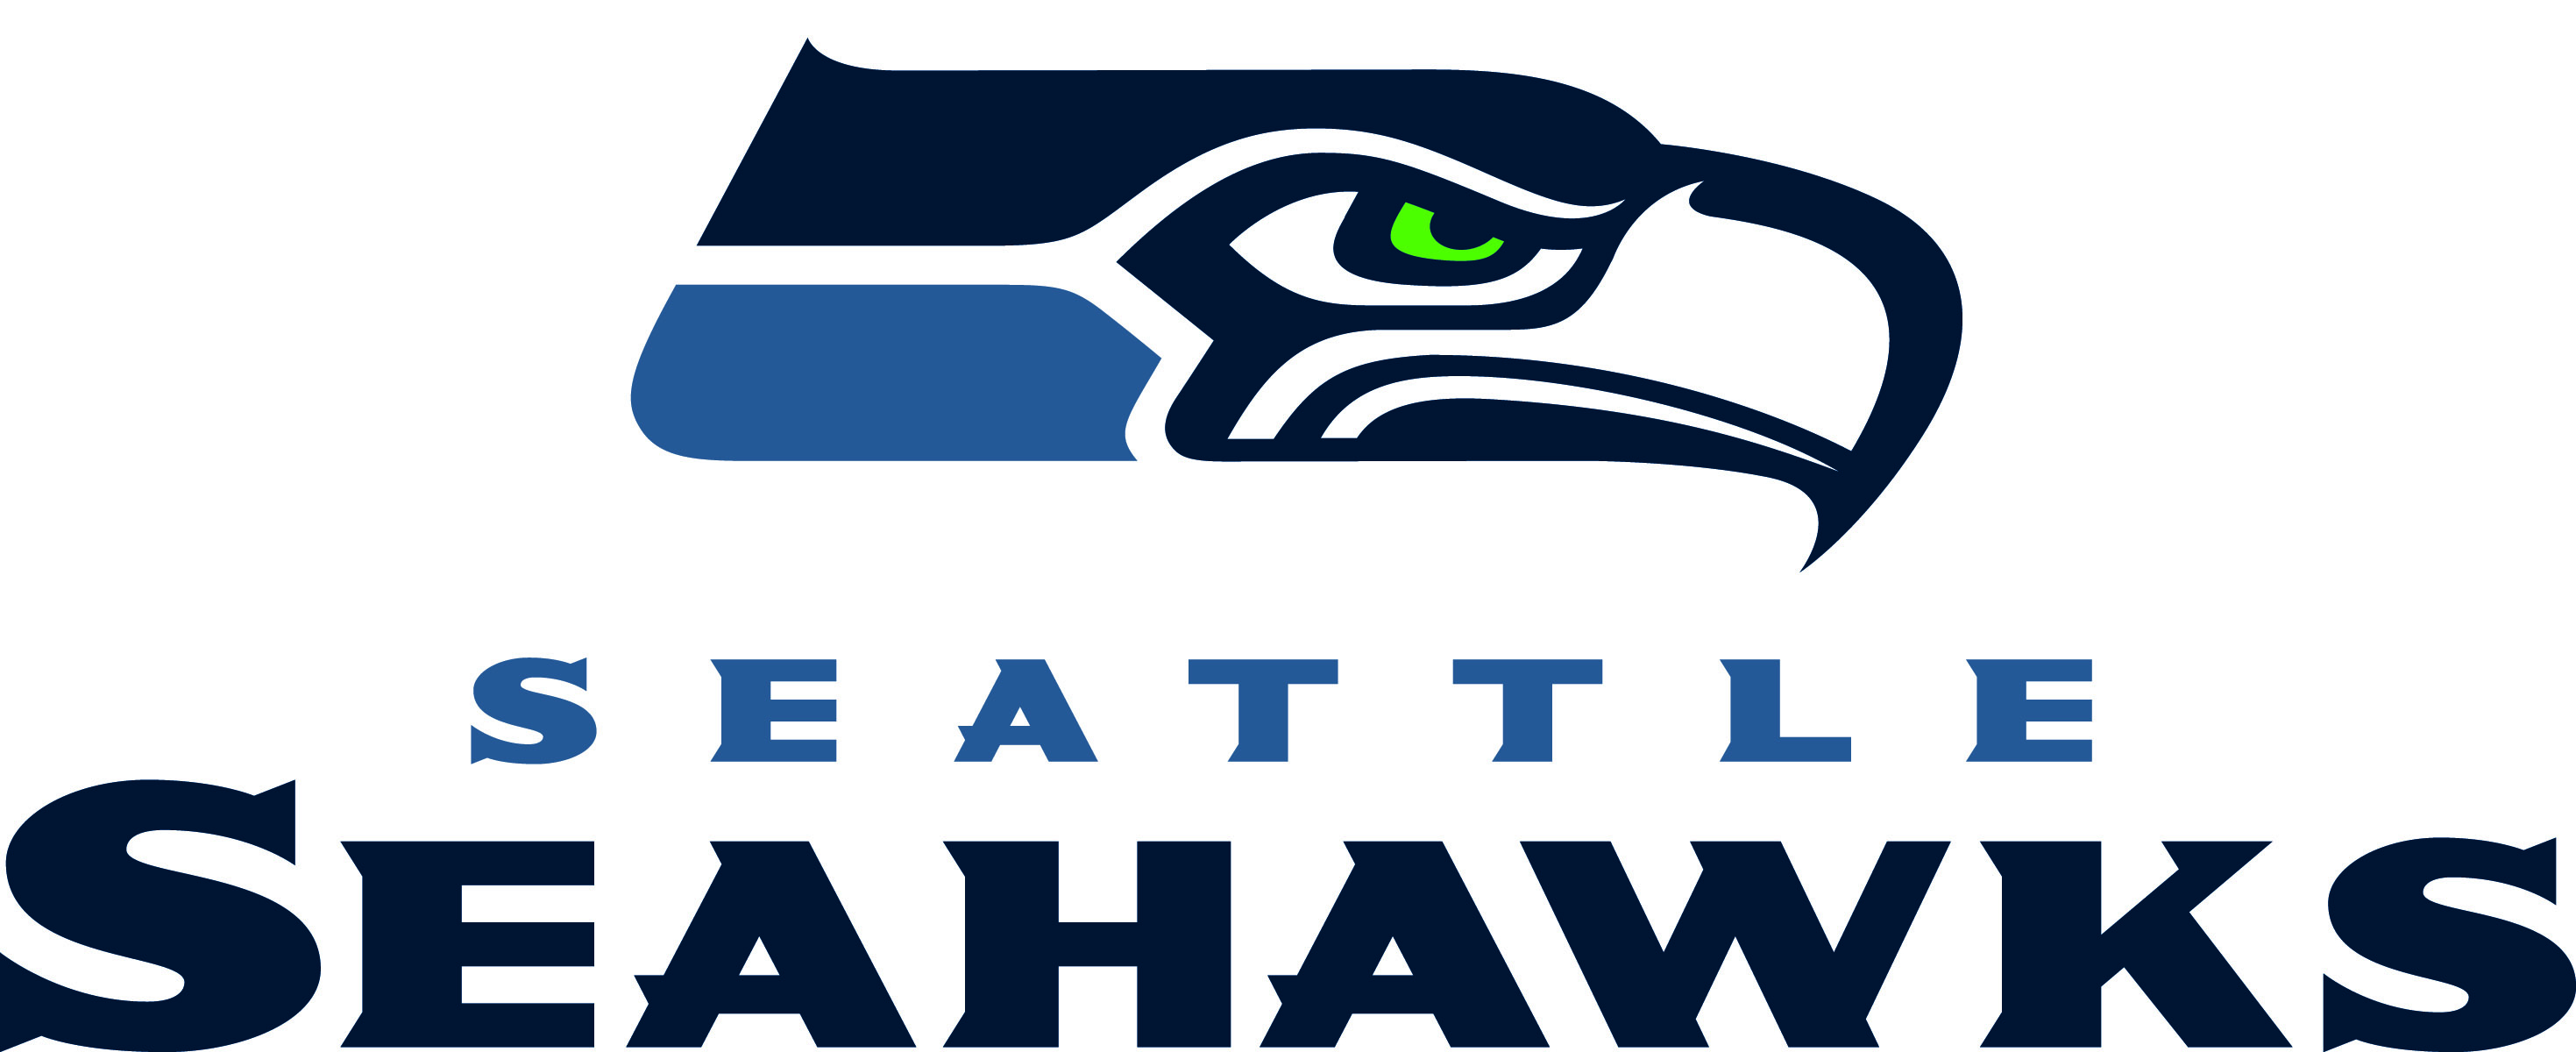 Seahawks Clipart Free Download Best Seahawks Clipart On